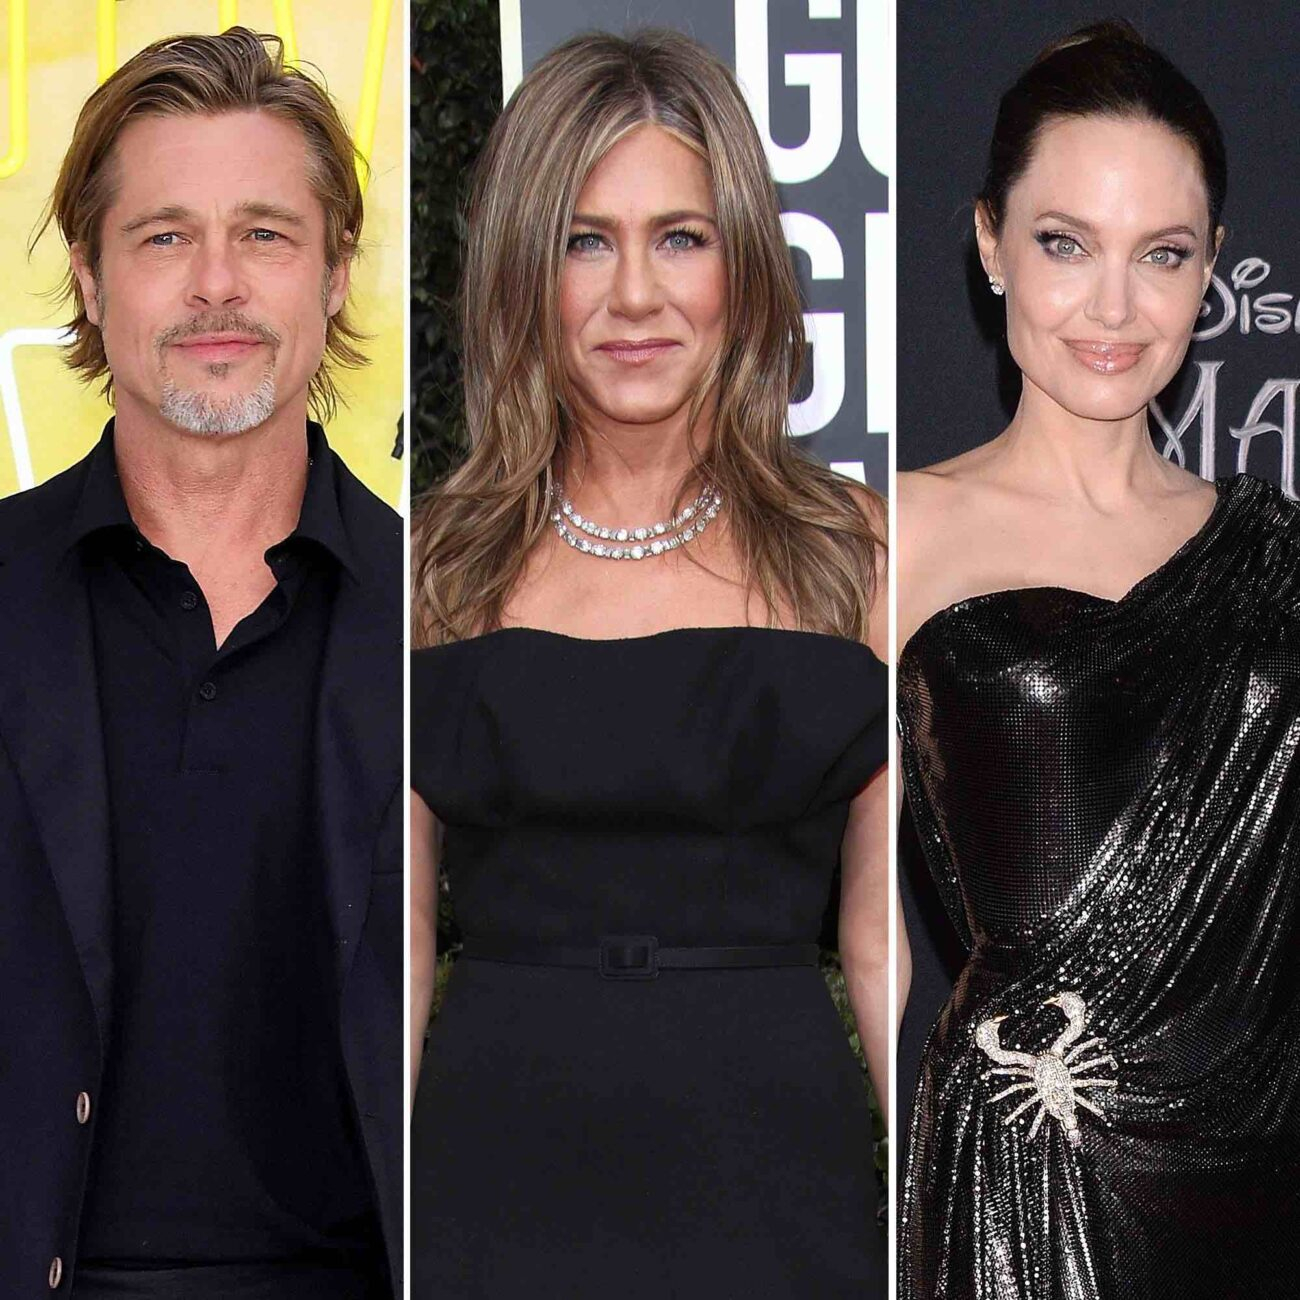 Did Jennifer Aniston warn us about Brad Pitt's alleged abuse? Dive into the latest turn of the Pitt-Jolie divorce case.